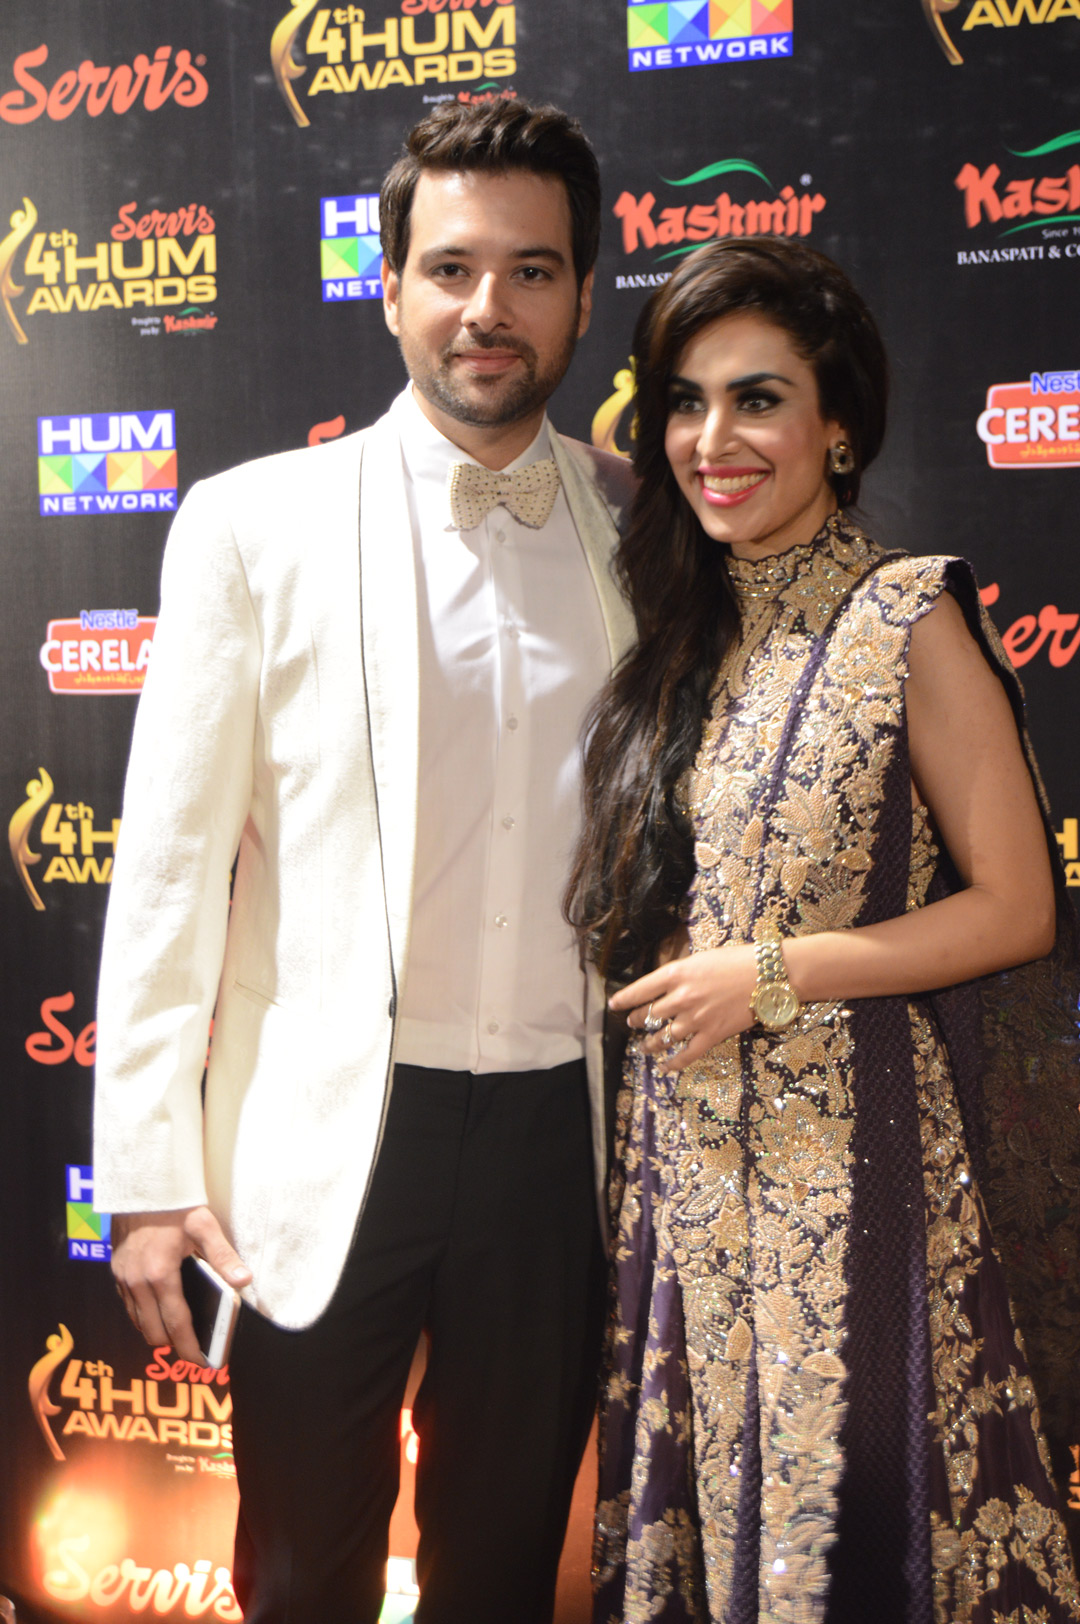 Mikaal Zulfiqar with Wife on HUM Awards Red Carpet